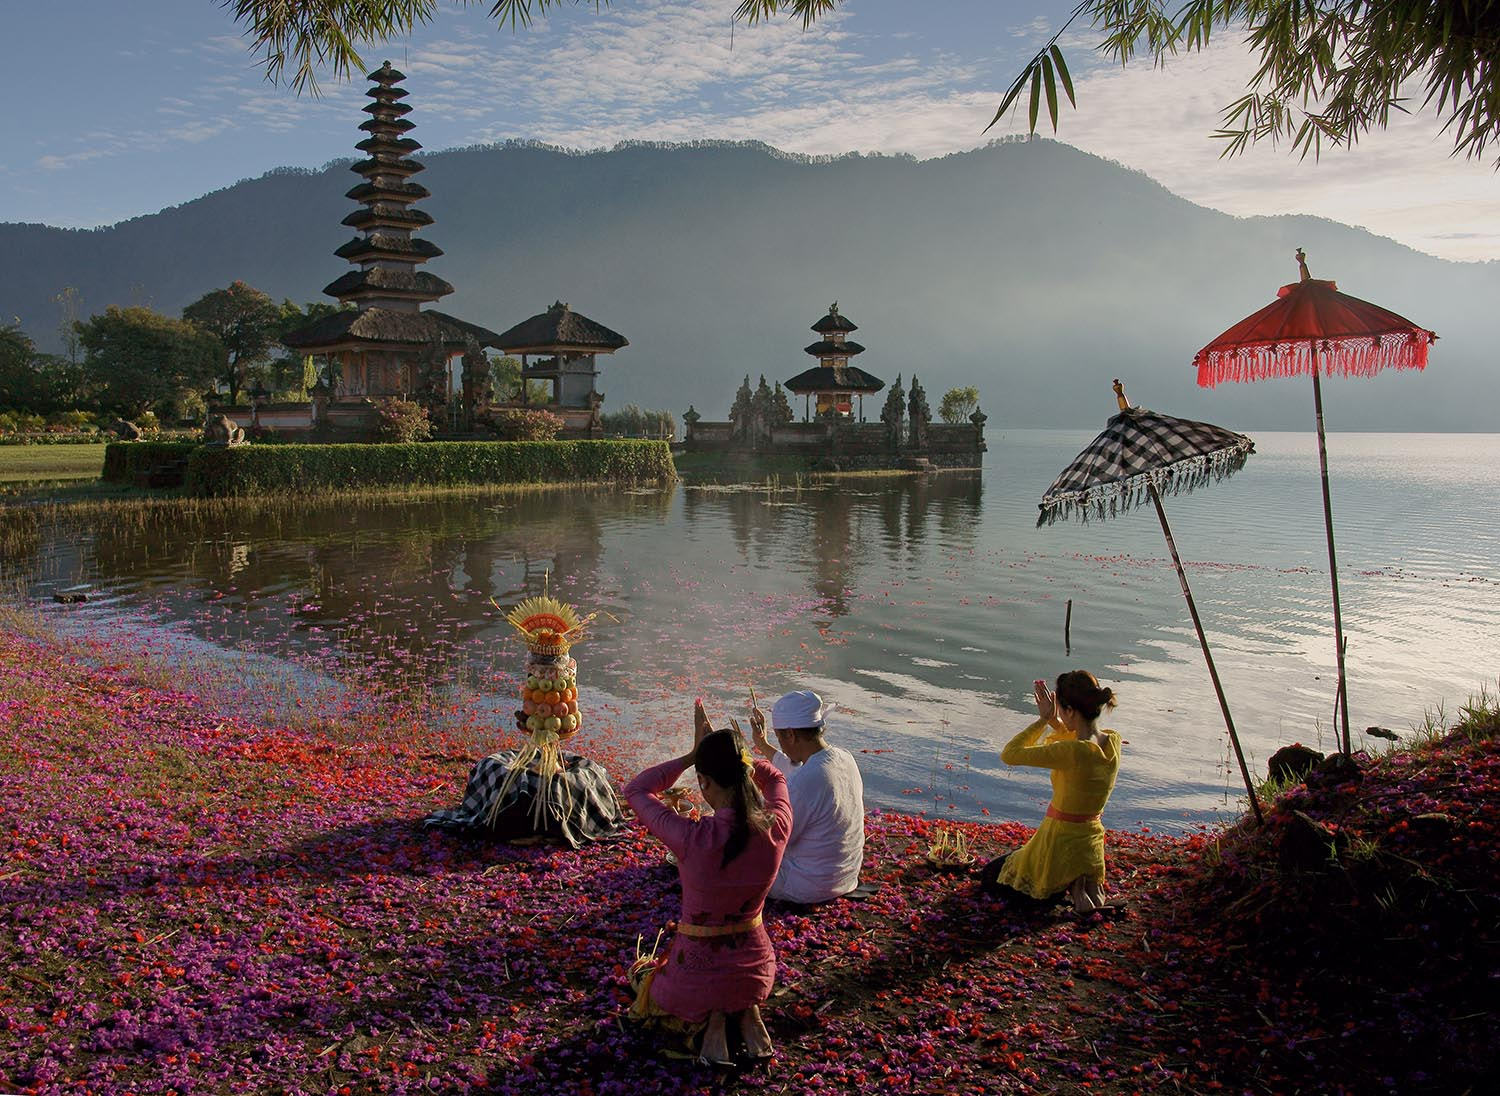 Photograph The Prayers by Cherly Jong on 500px